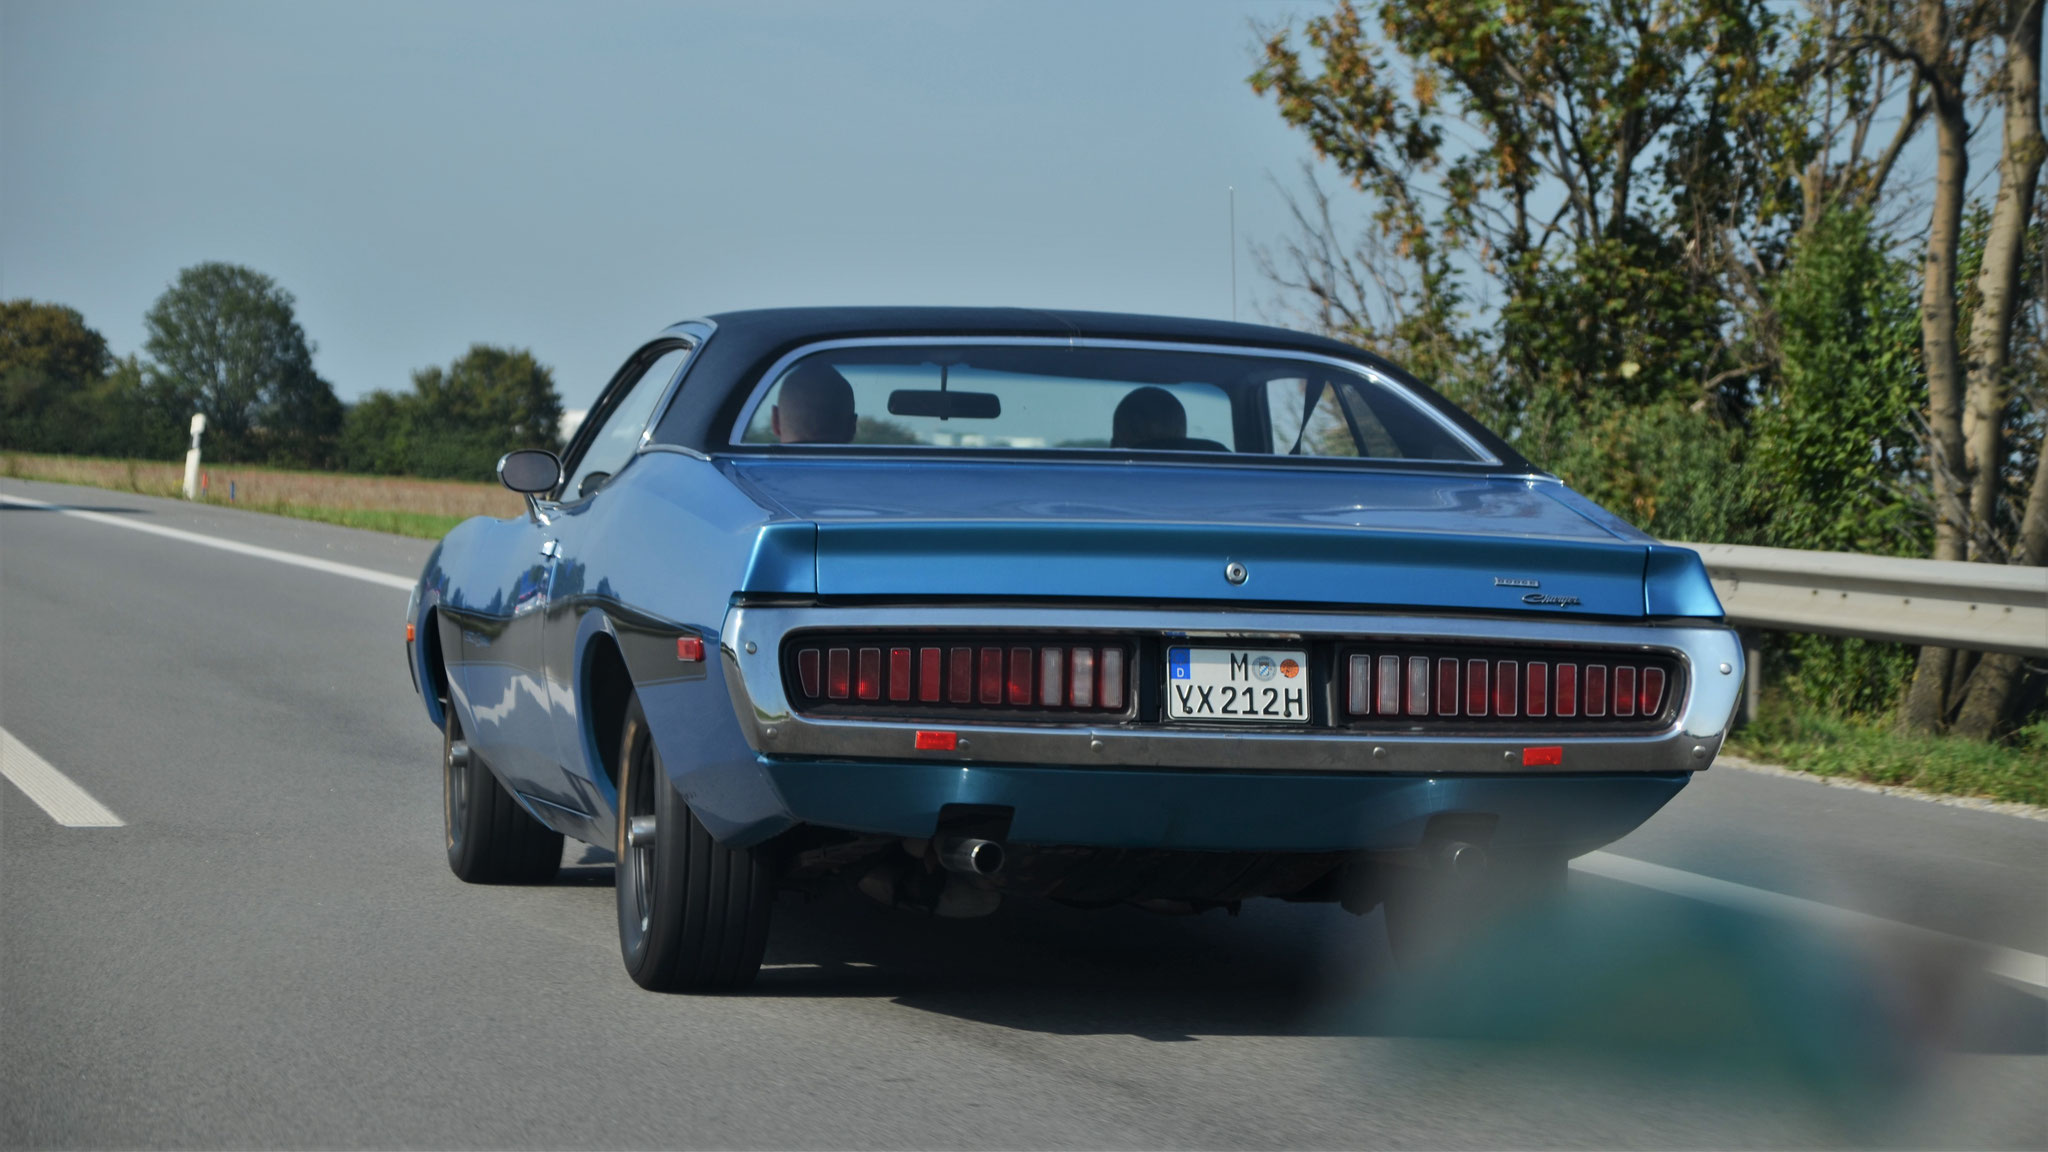 Dodge Charger RT - M-YX-212H